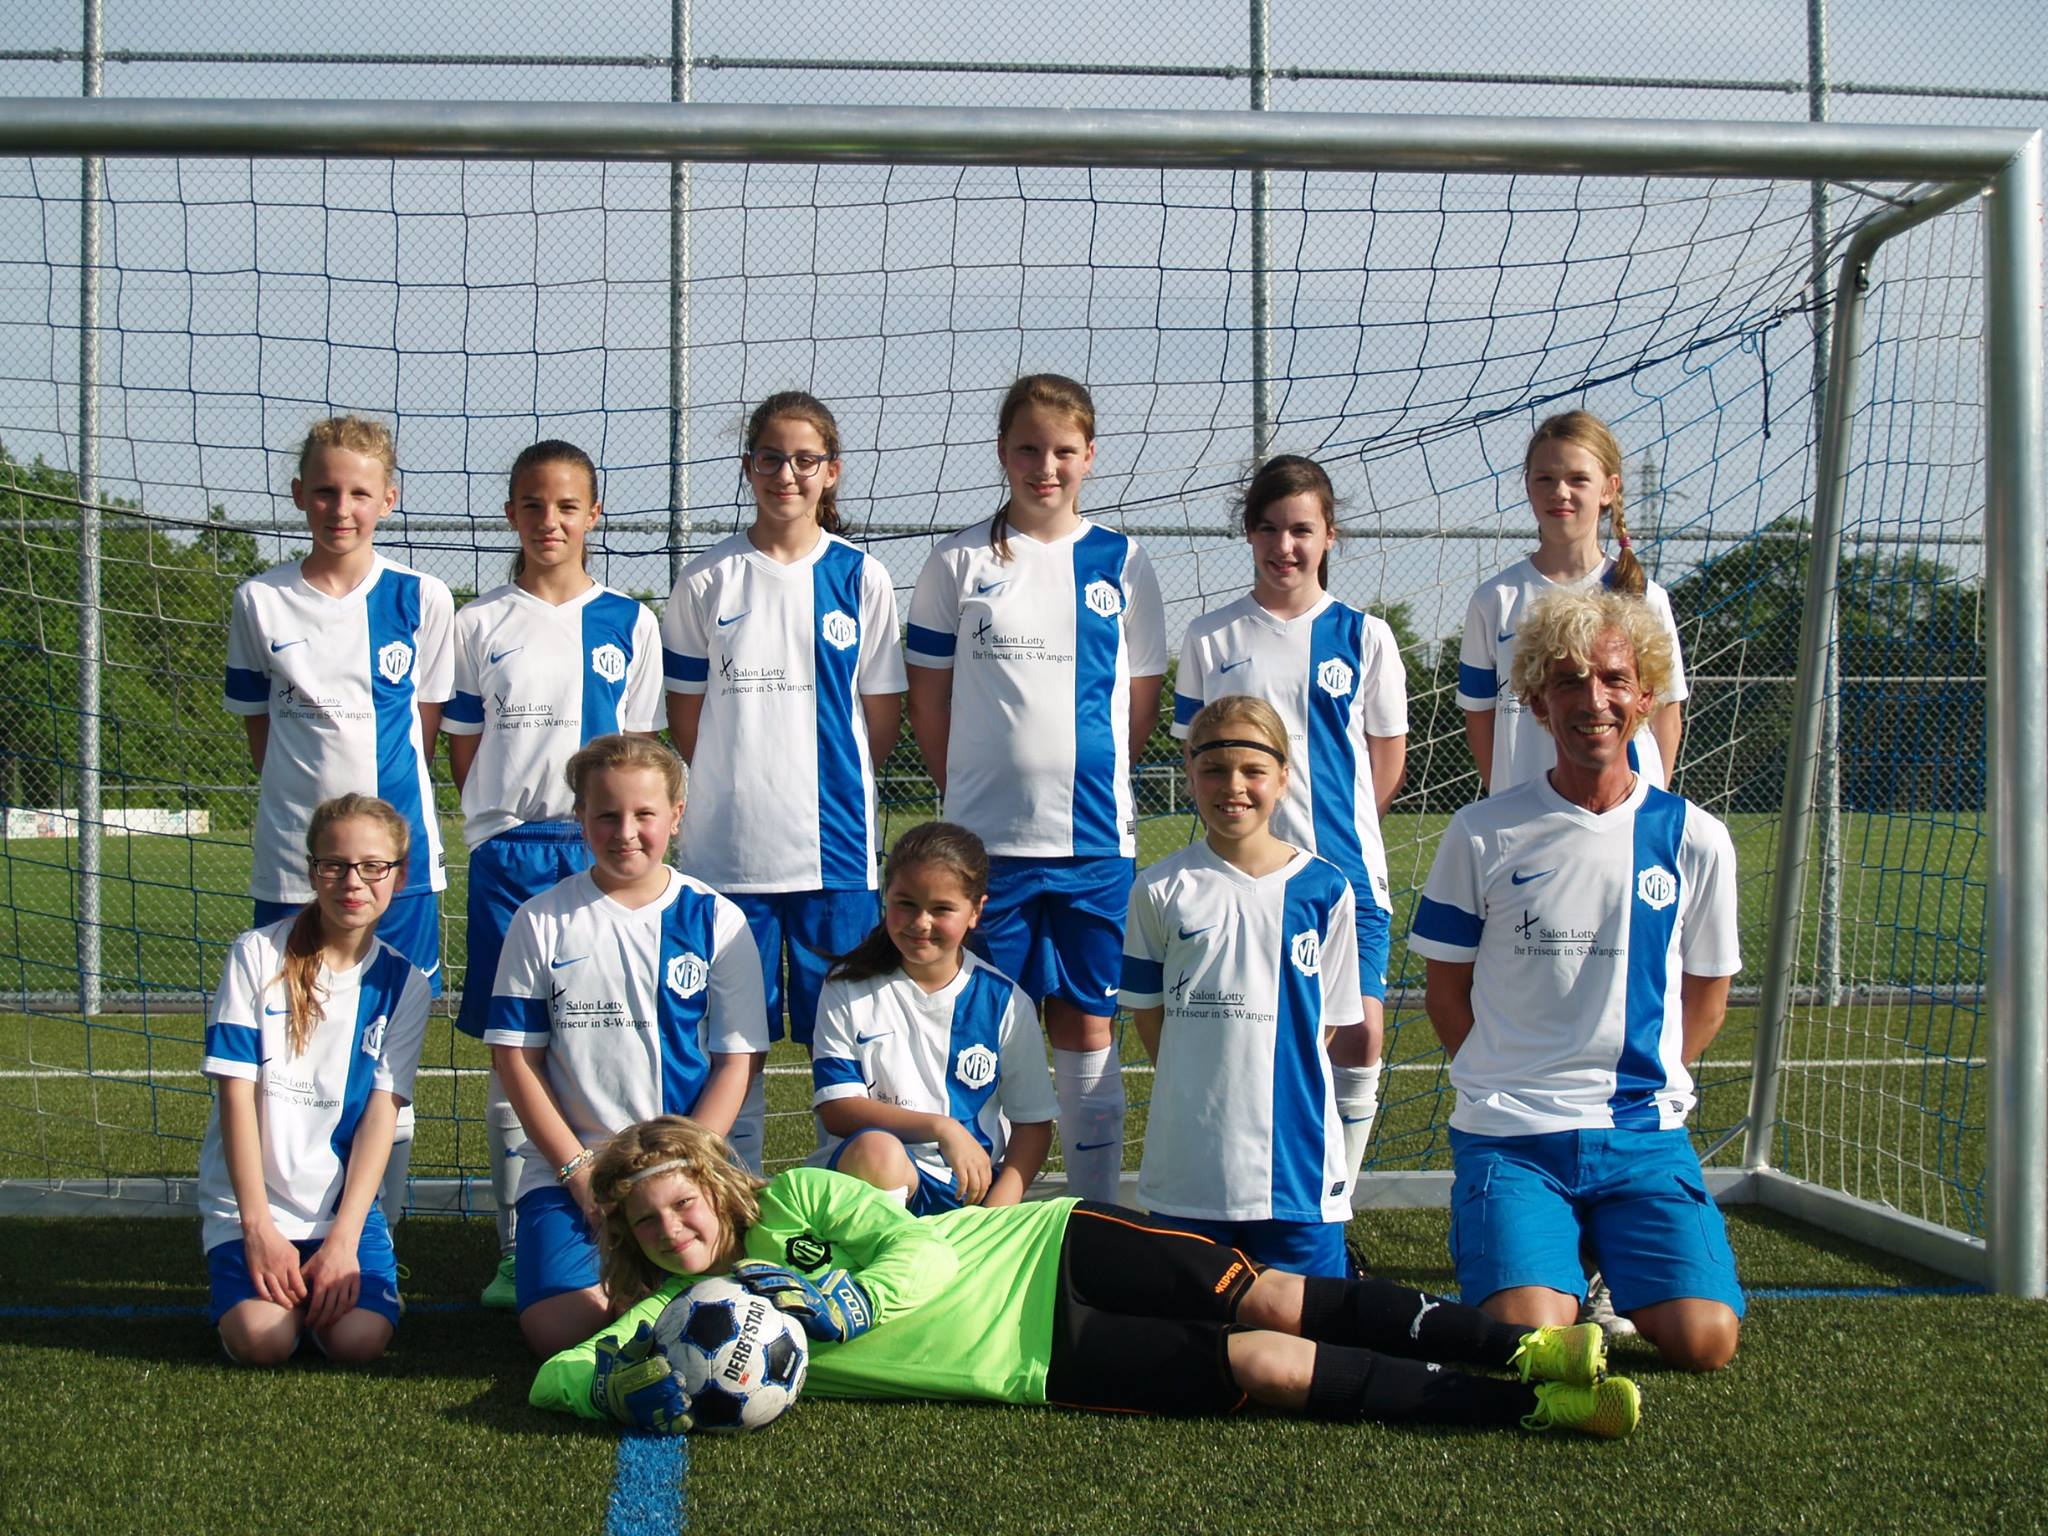 Unsere Jugend